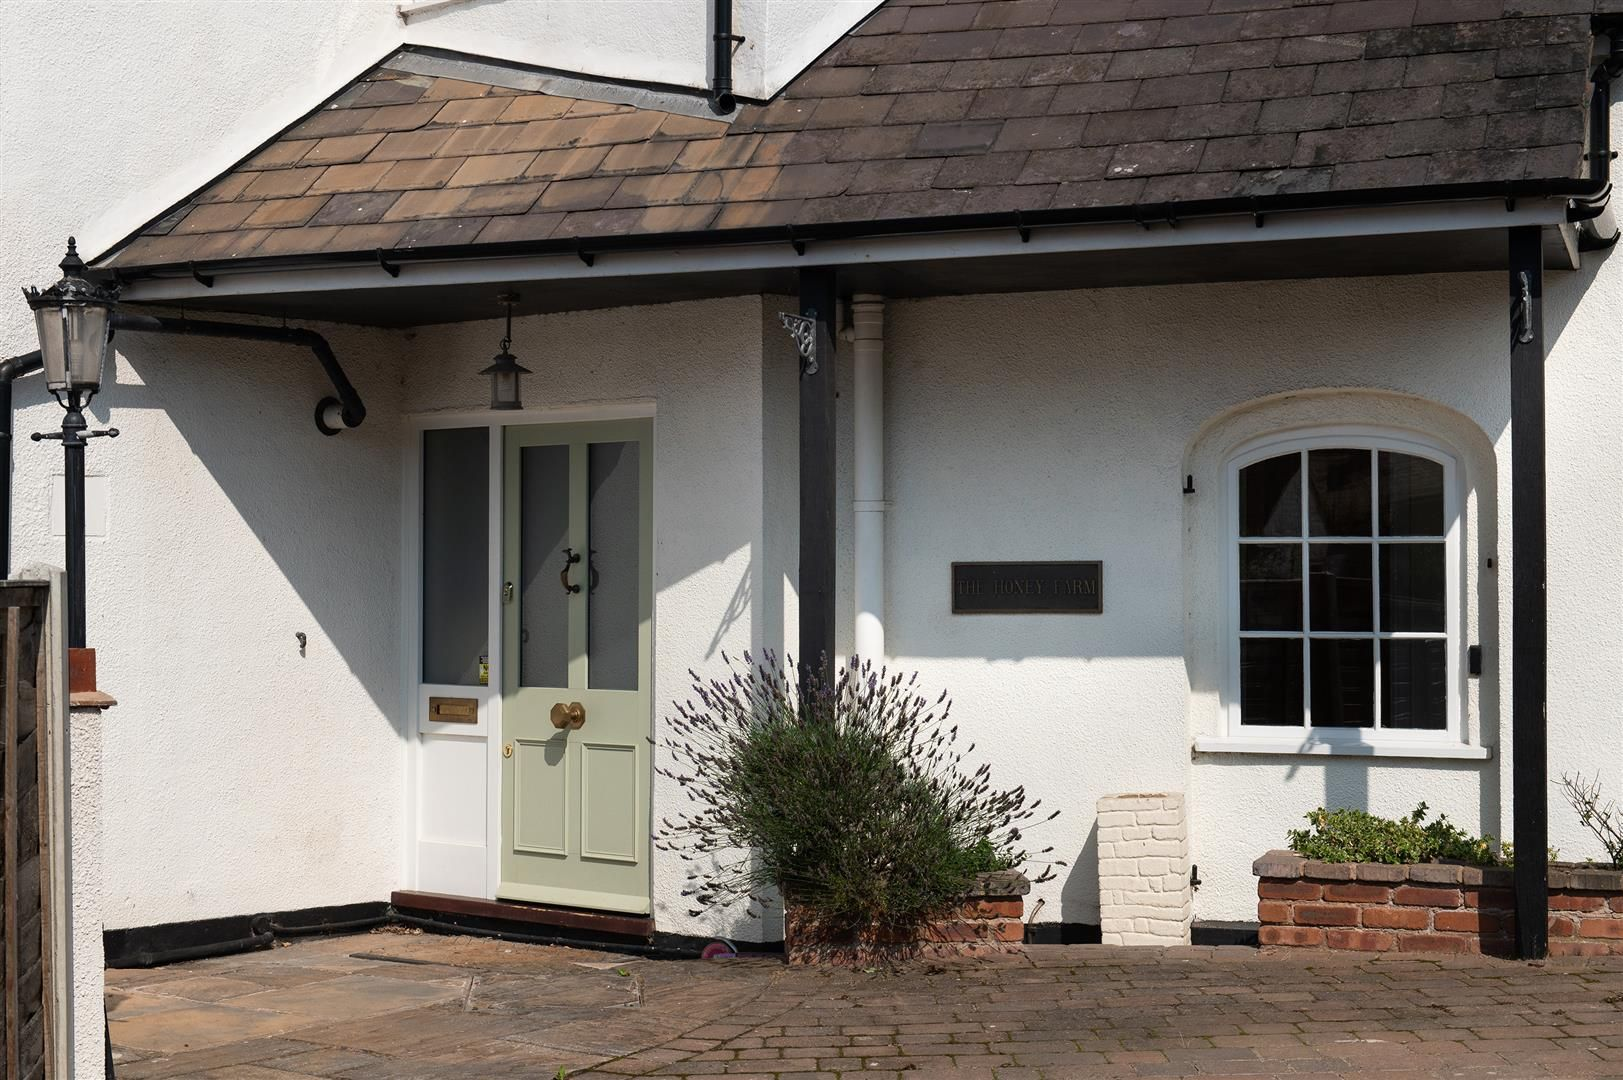 4 bed detached for sale in Blakedown 3